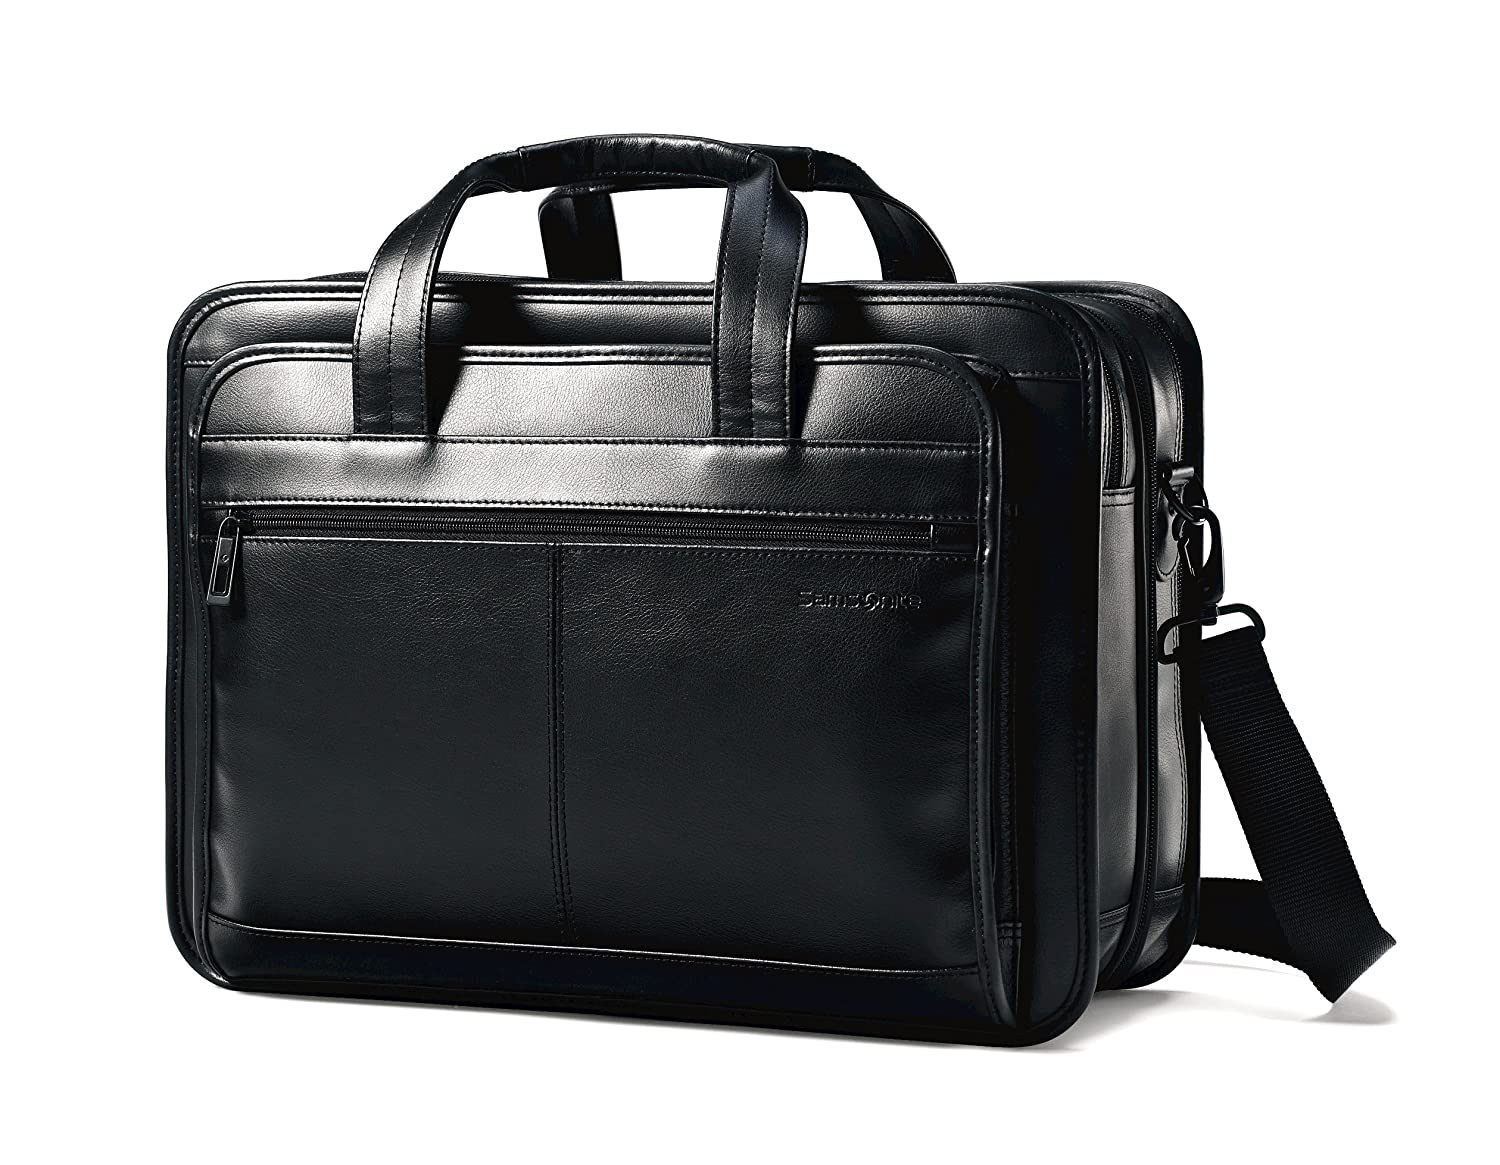 Samsonite Leather Expandable Briefcase, Black Samsonite Corporation 43118-1041